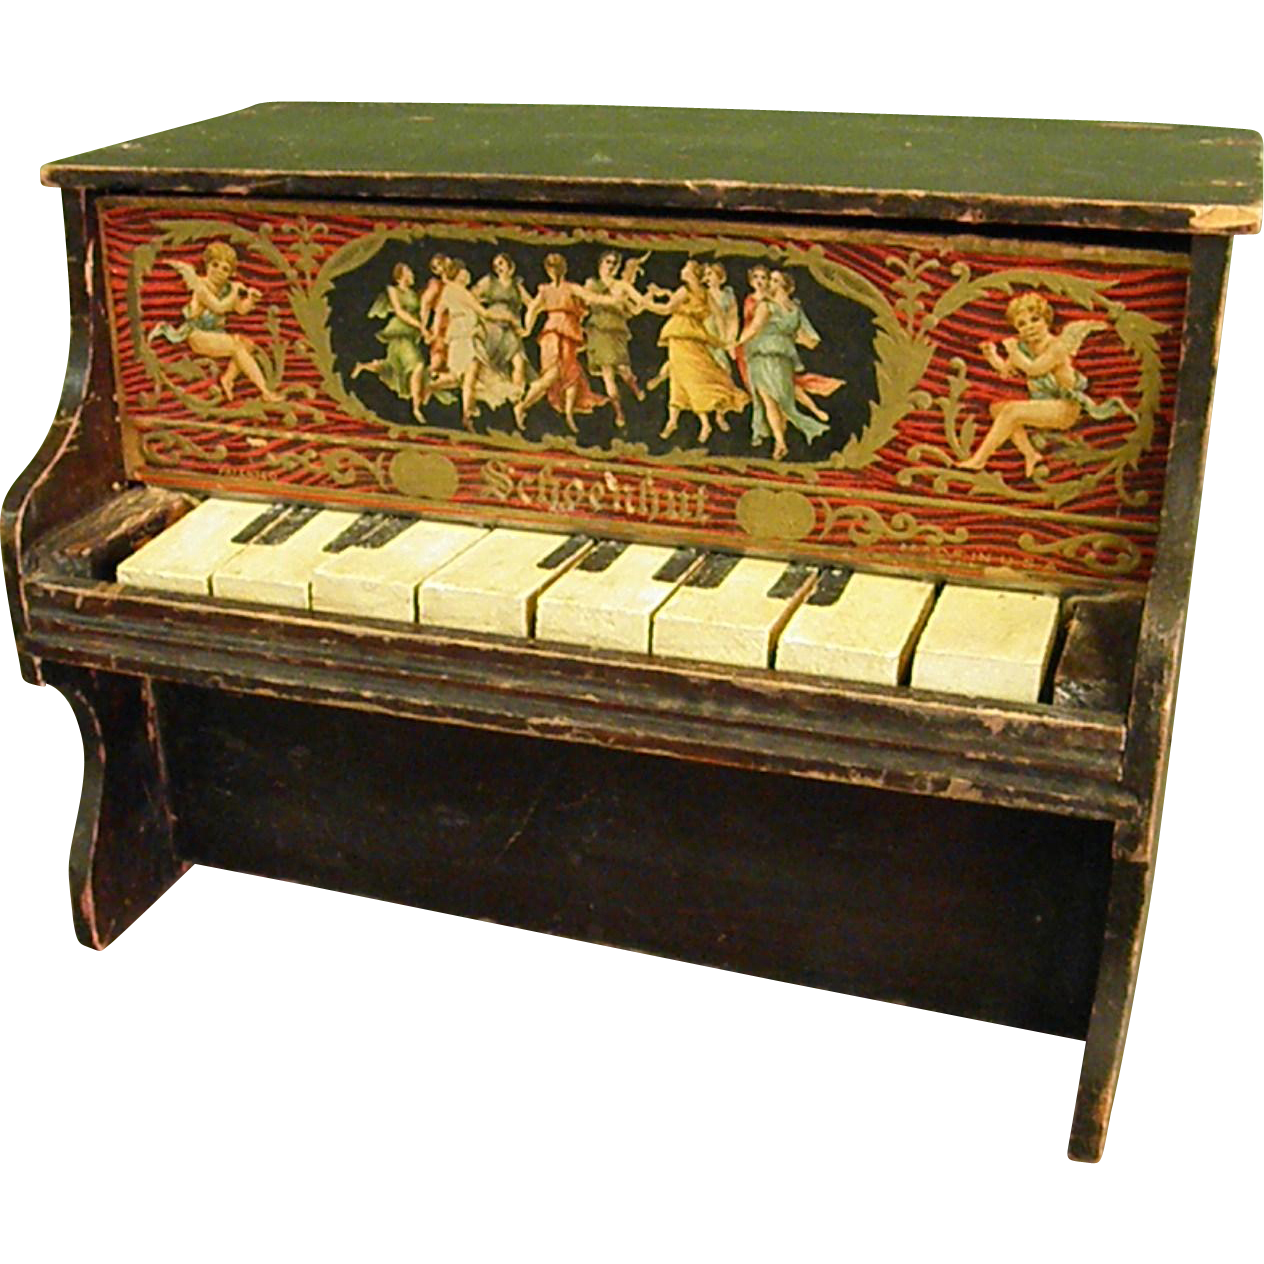 Fantastic Antique Schoenhut Wooden Toy Piano From